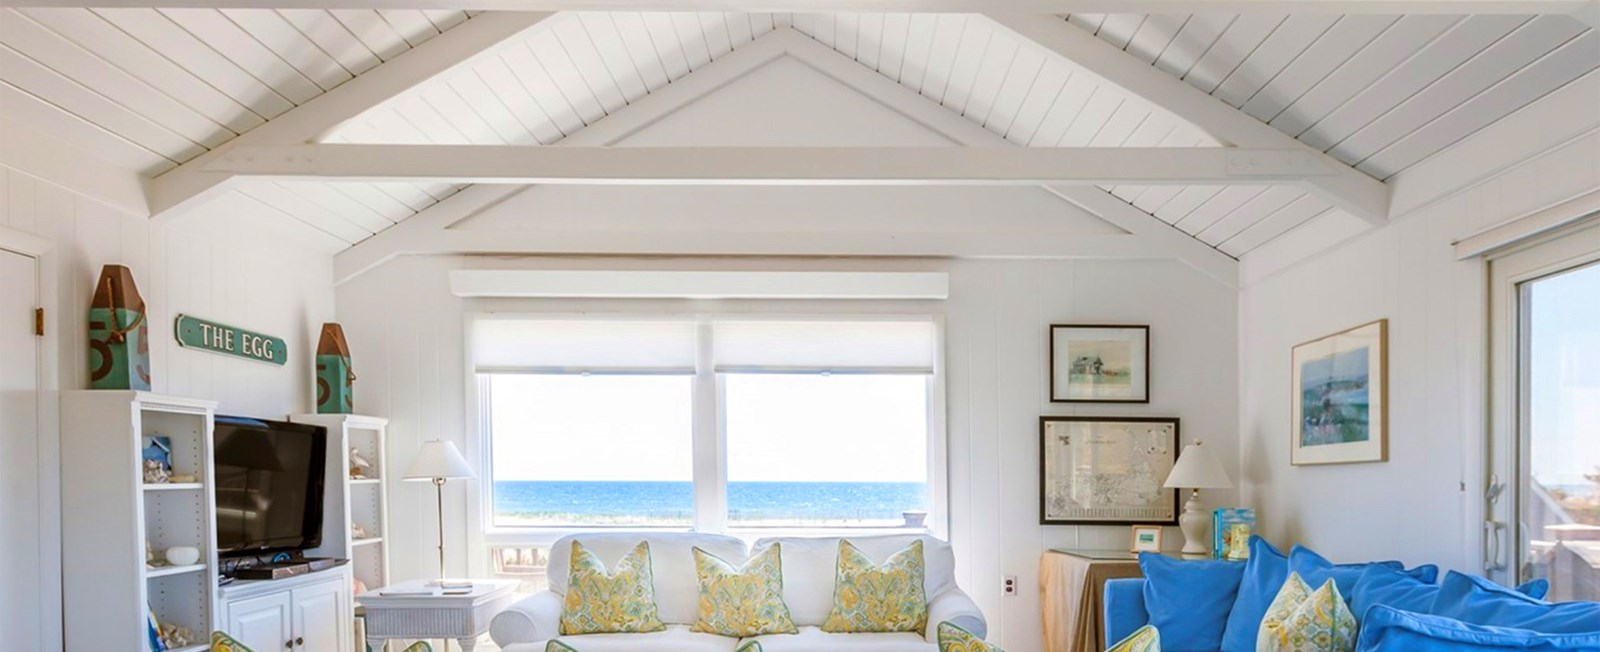 Now is the time to book that amazing Nantucket vacation rental—summer will be here before you know it!